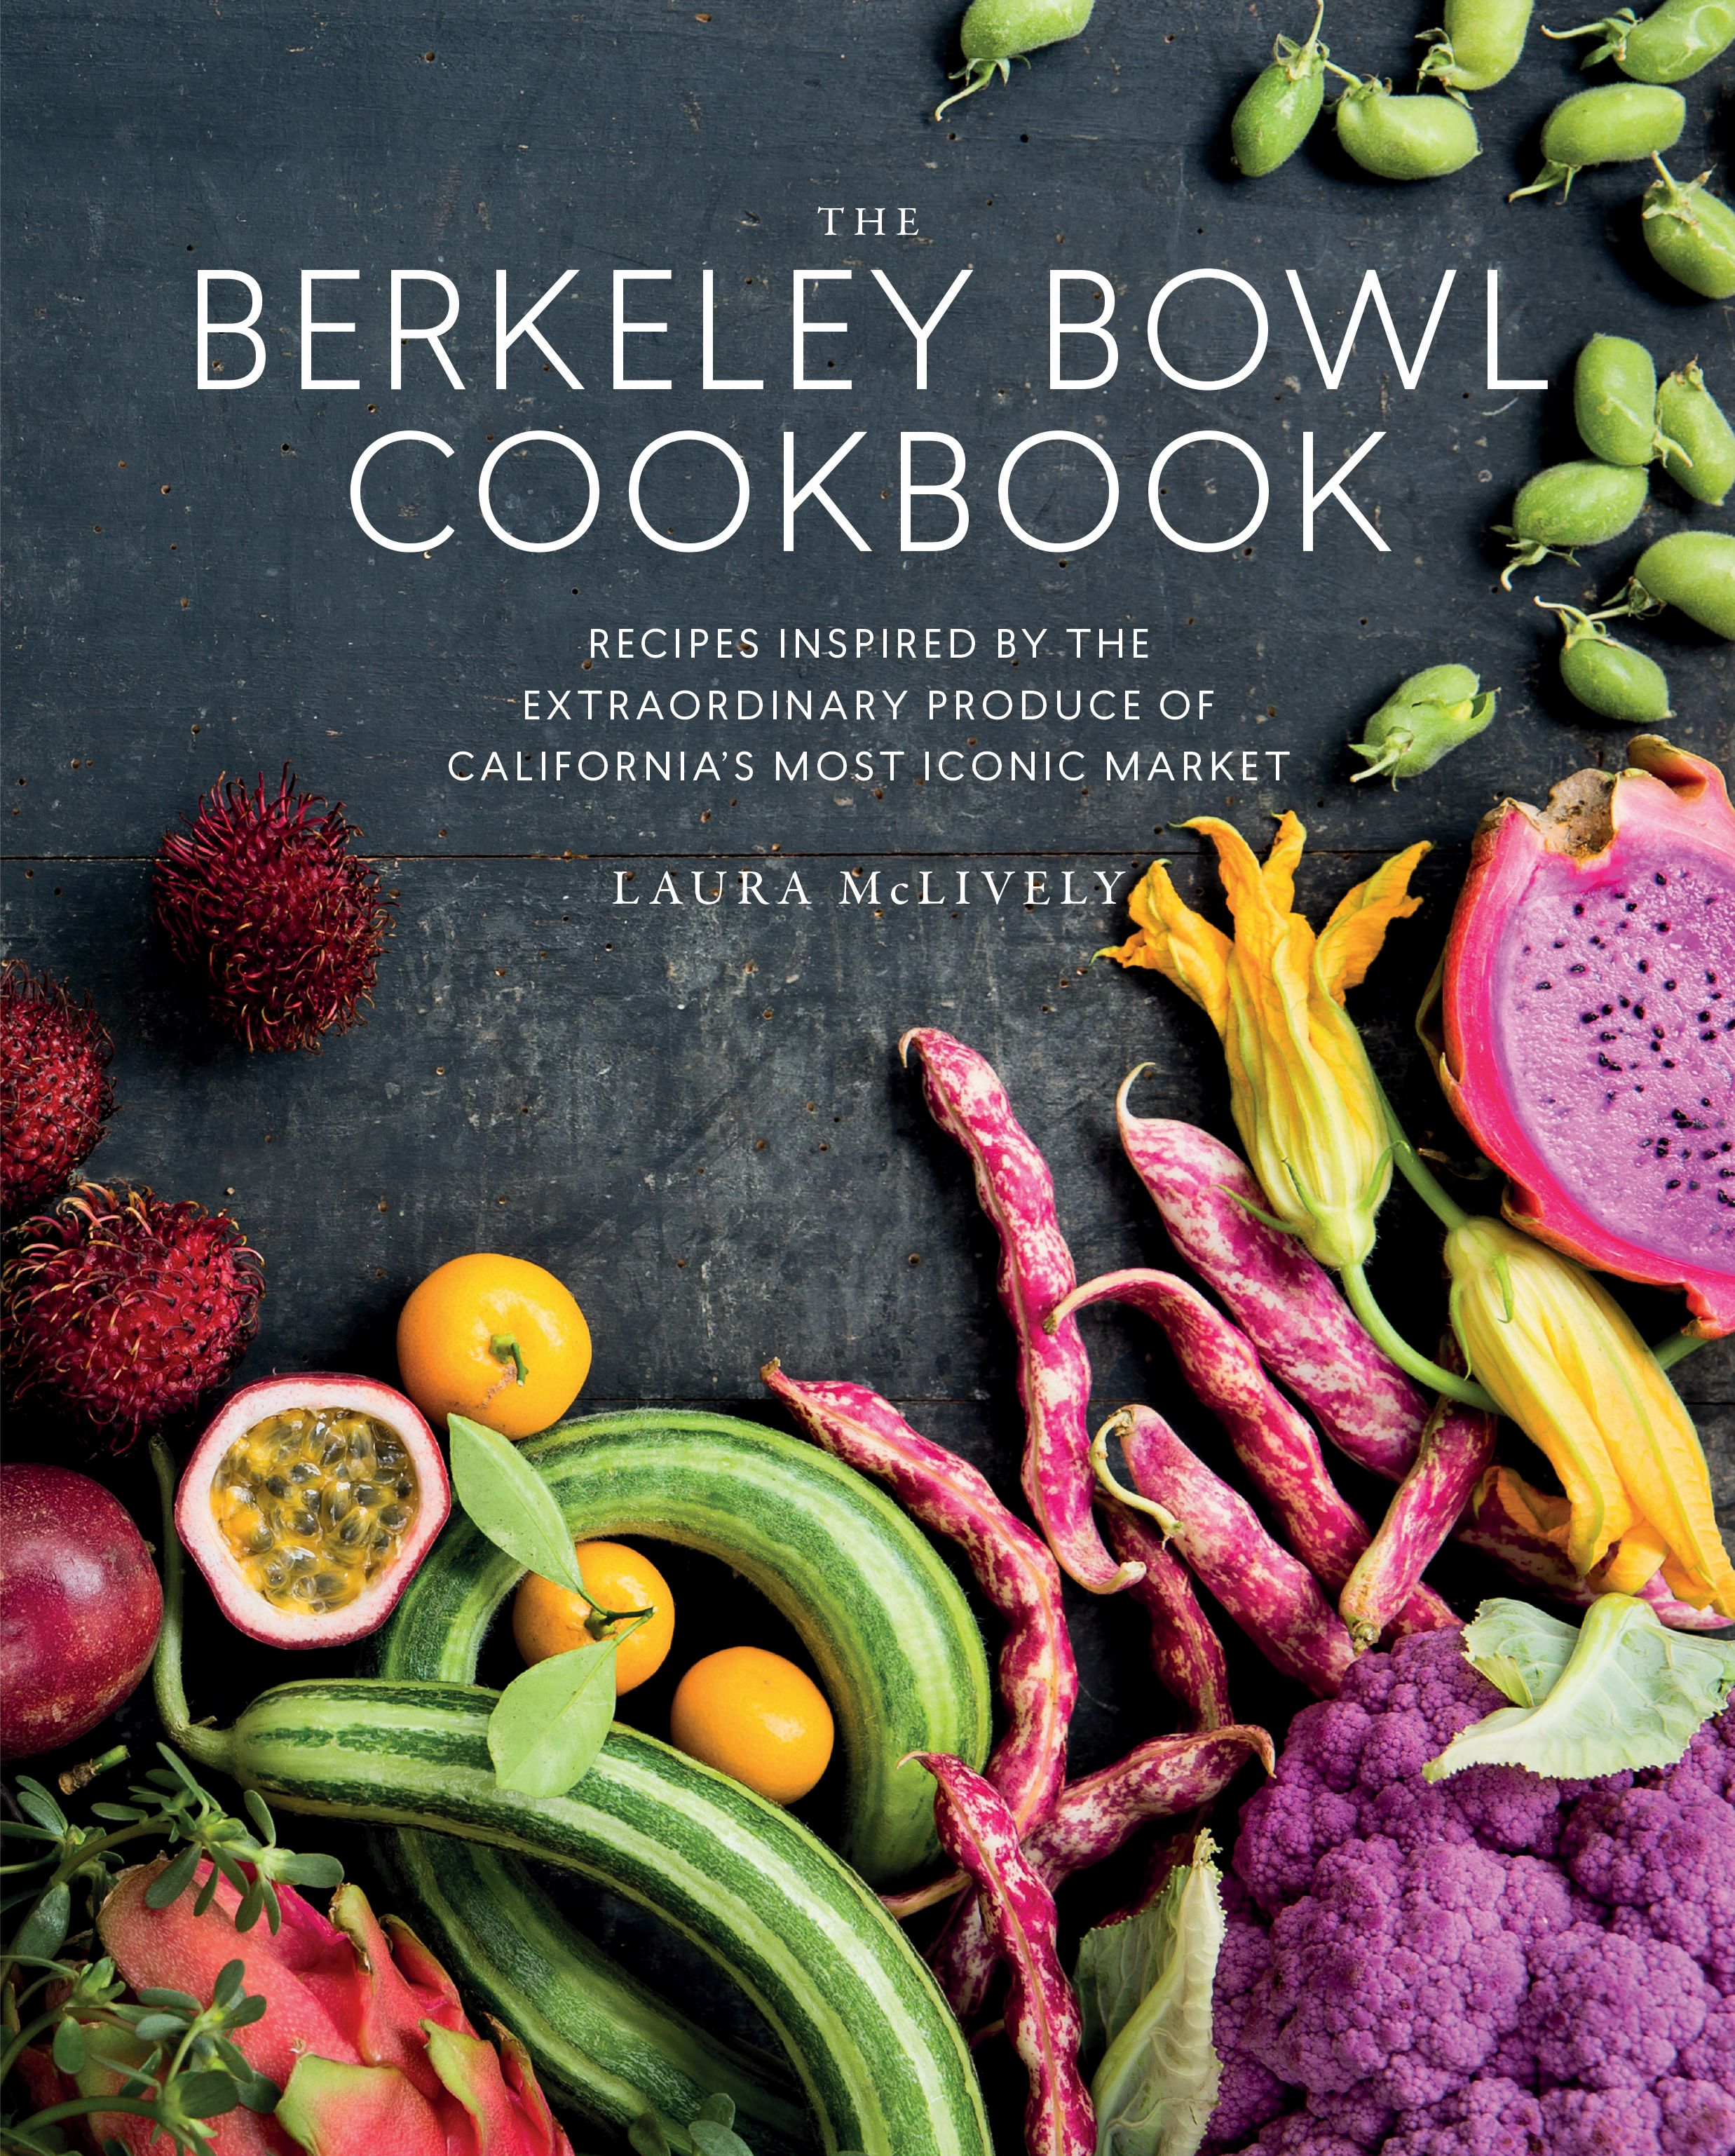 Need plant-based inspiration? - Get your hands on The Berkeley Bowl Cookbook now! Available at Berkeley Bowl Market, local book and gift shops, and all major online retailers.